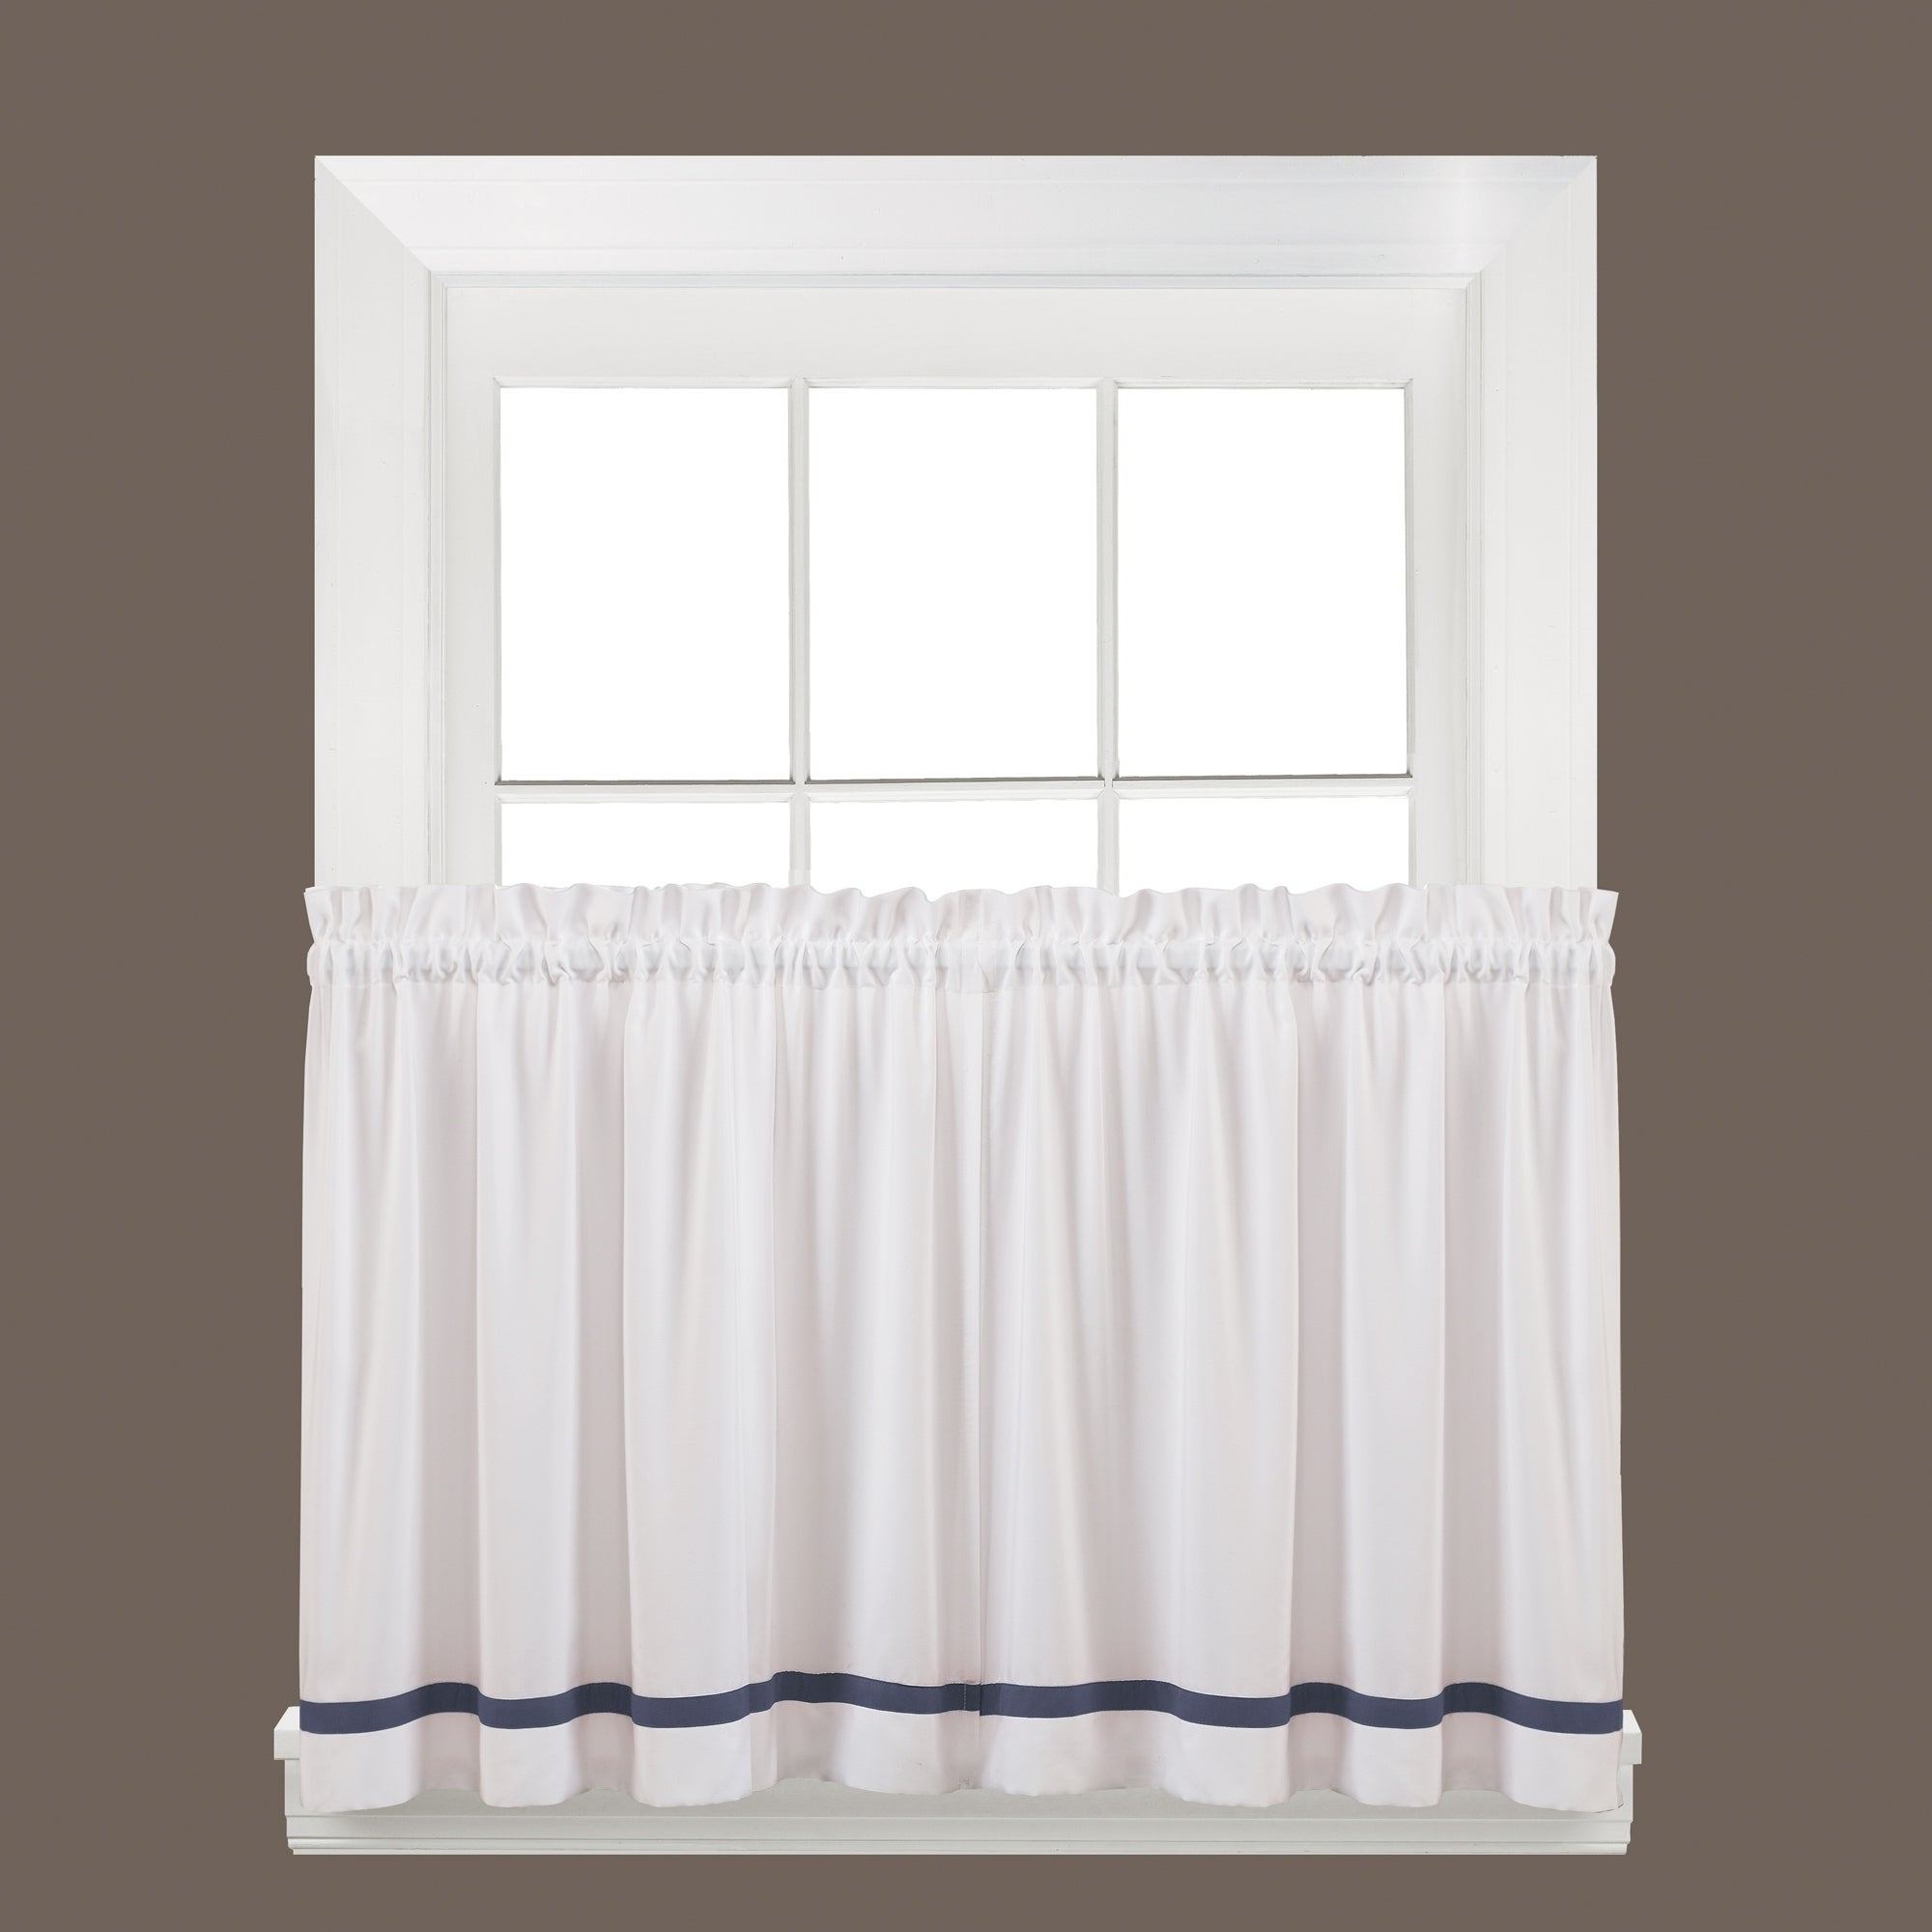 2020 Cumberland Tier Pairs In Dove Gray Pertaining To Skl Home Kate 24 Inch Tier Pair In Blue (View 6 of 20)